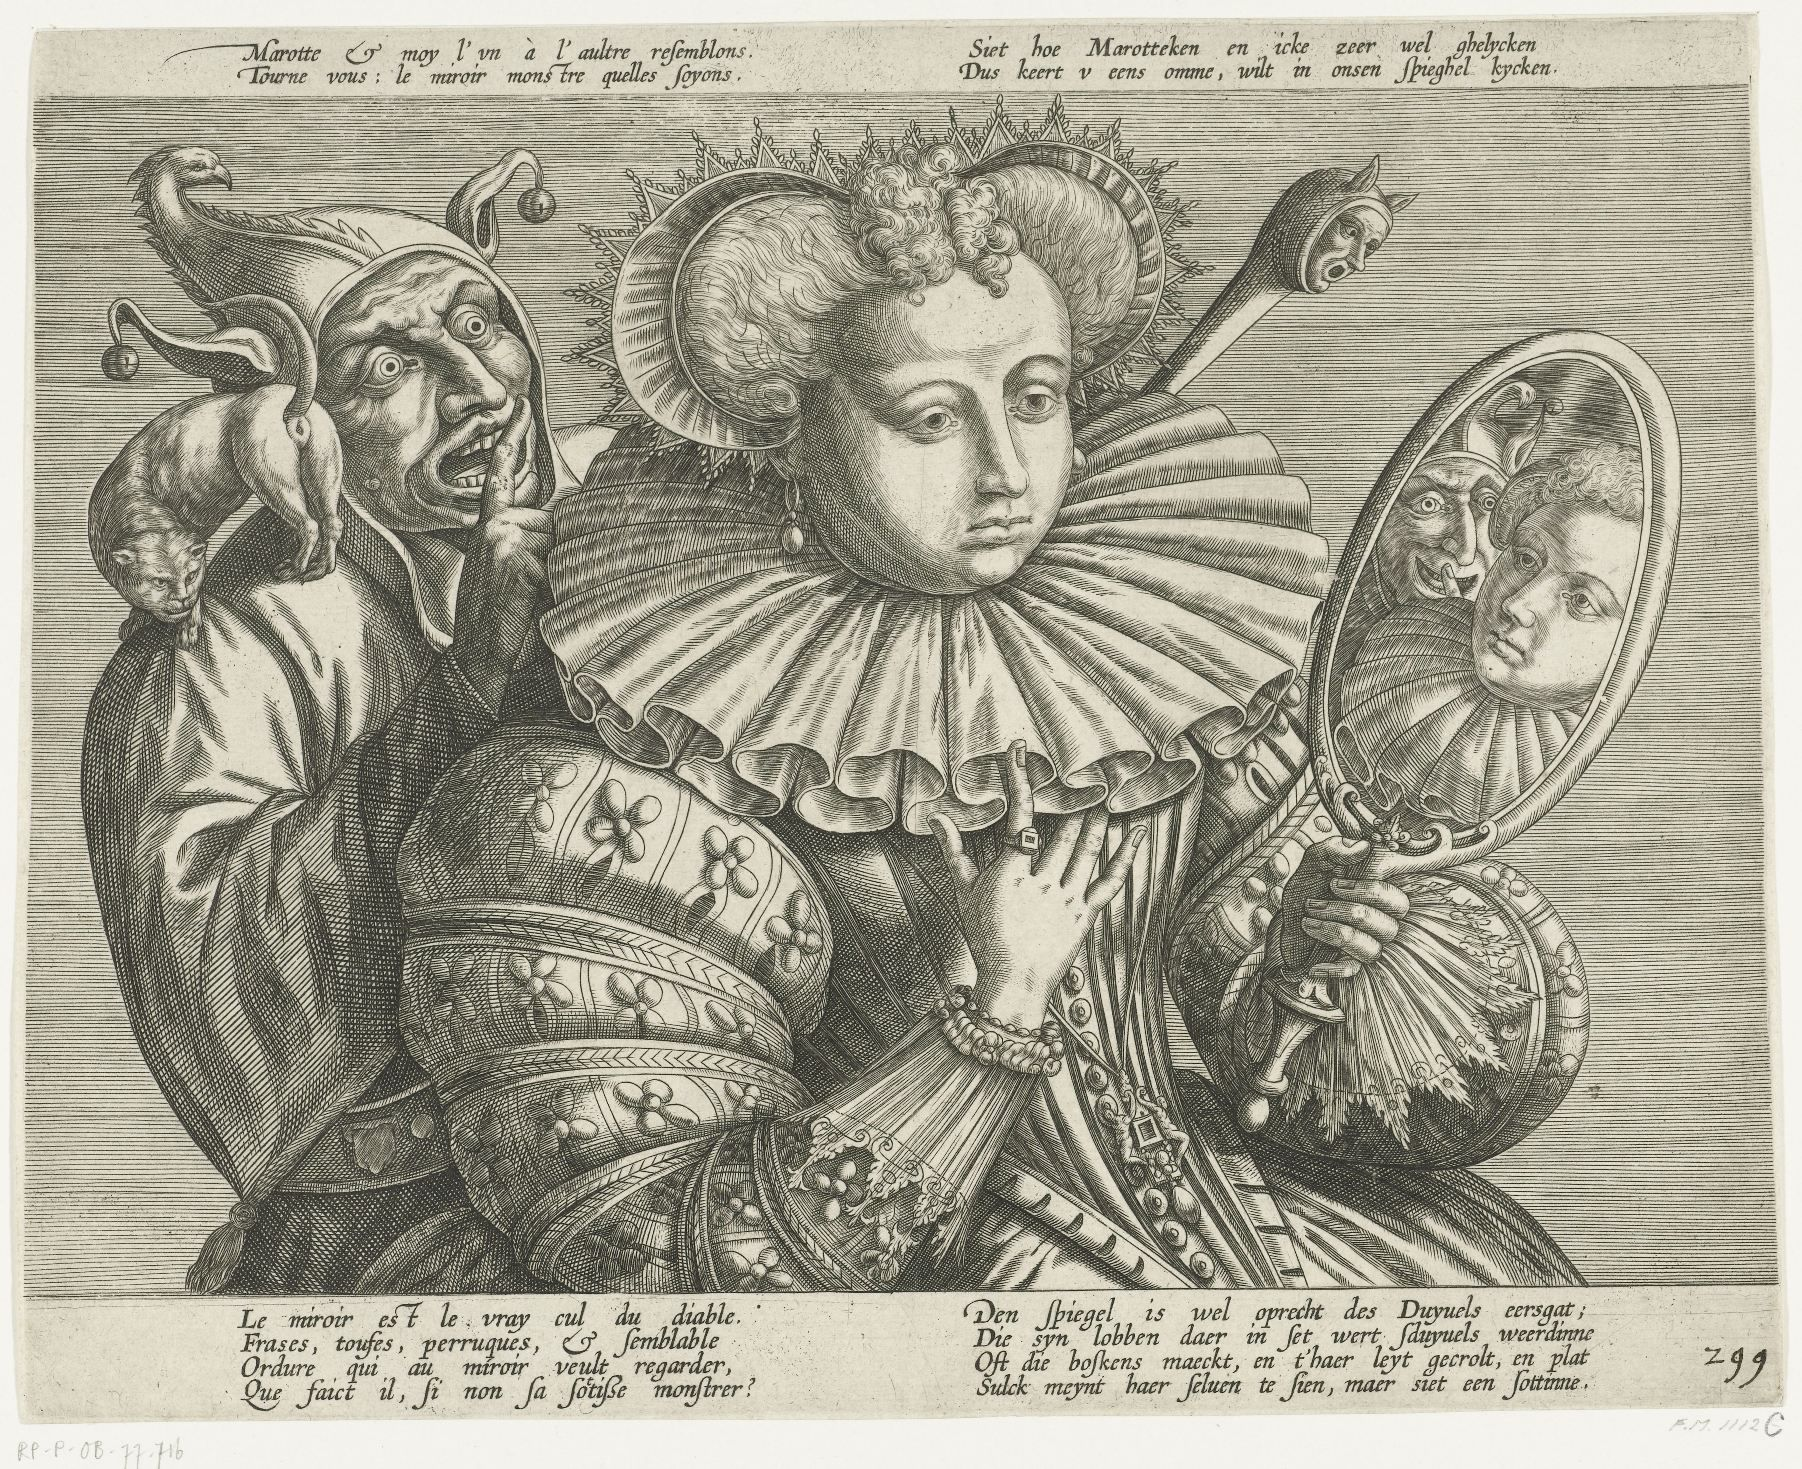 """anonymous Netherlandish engraver, c.1600. Rijksmuseum, RP-P-OB-77.716 Of the bilingual French/Dutch text, it is the Dutch that is the more informative. The quatrain (lower right) in trans: """"The mirror is truly the Devil's arsehole. She who sets her ruff in it becomes the Devil's hostess... She thinks she is seeing herself but it is a fool she is really looking at"""""""